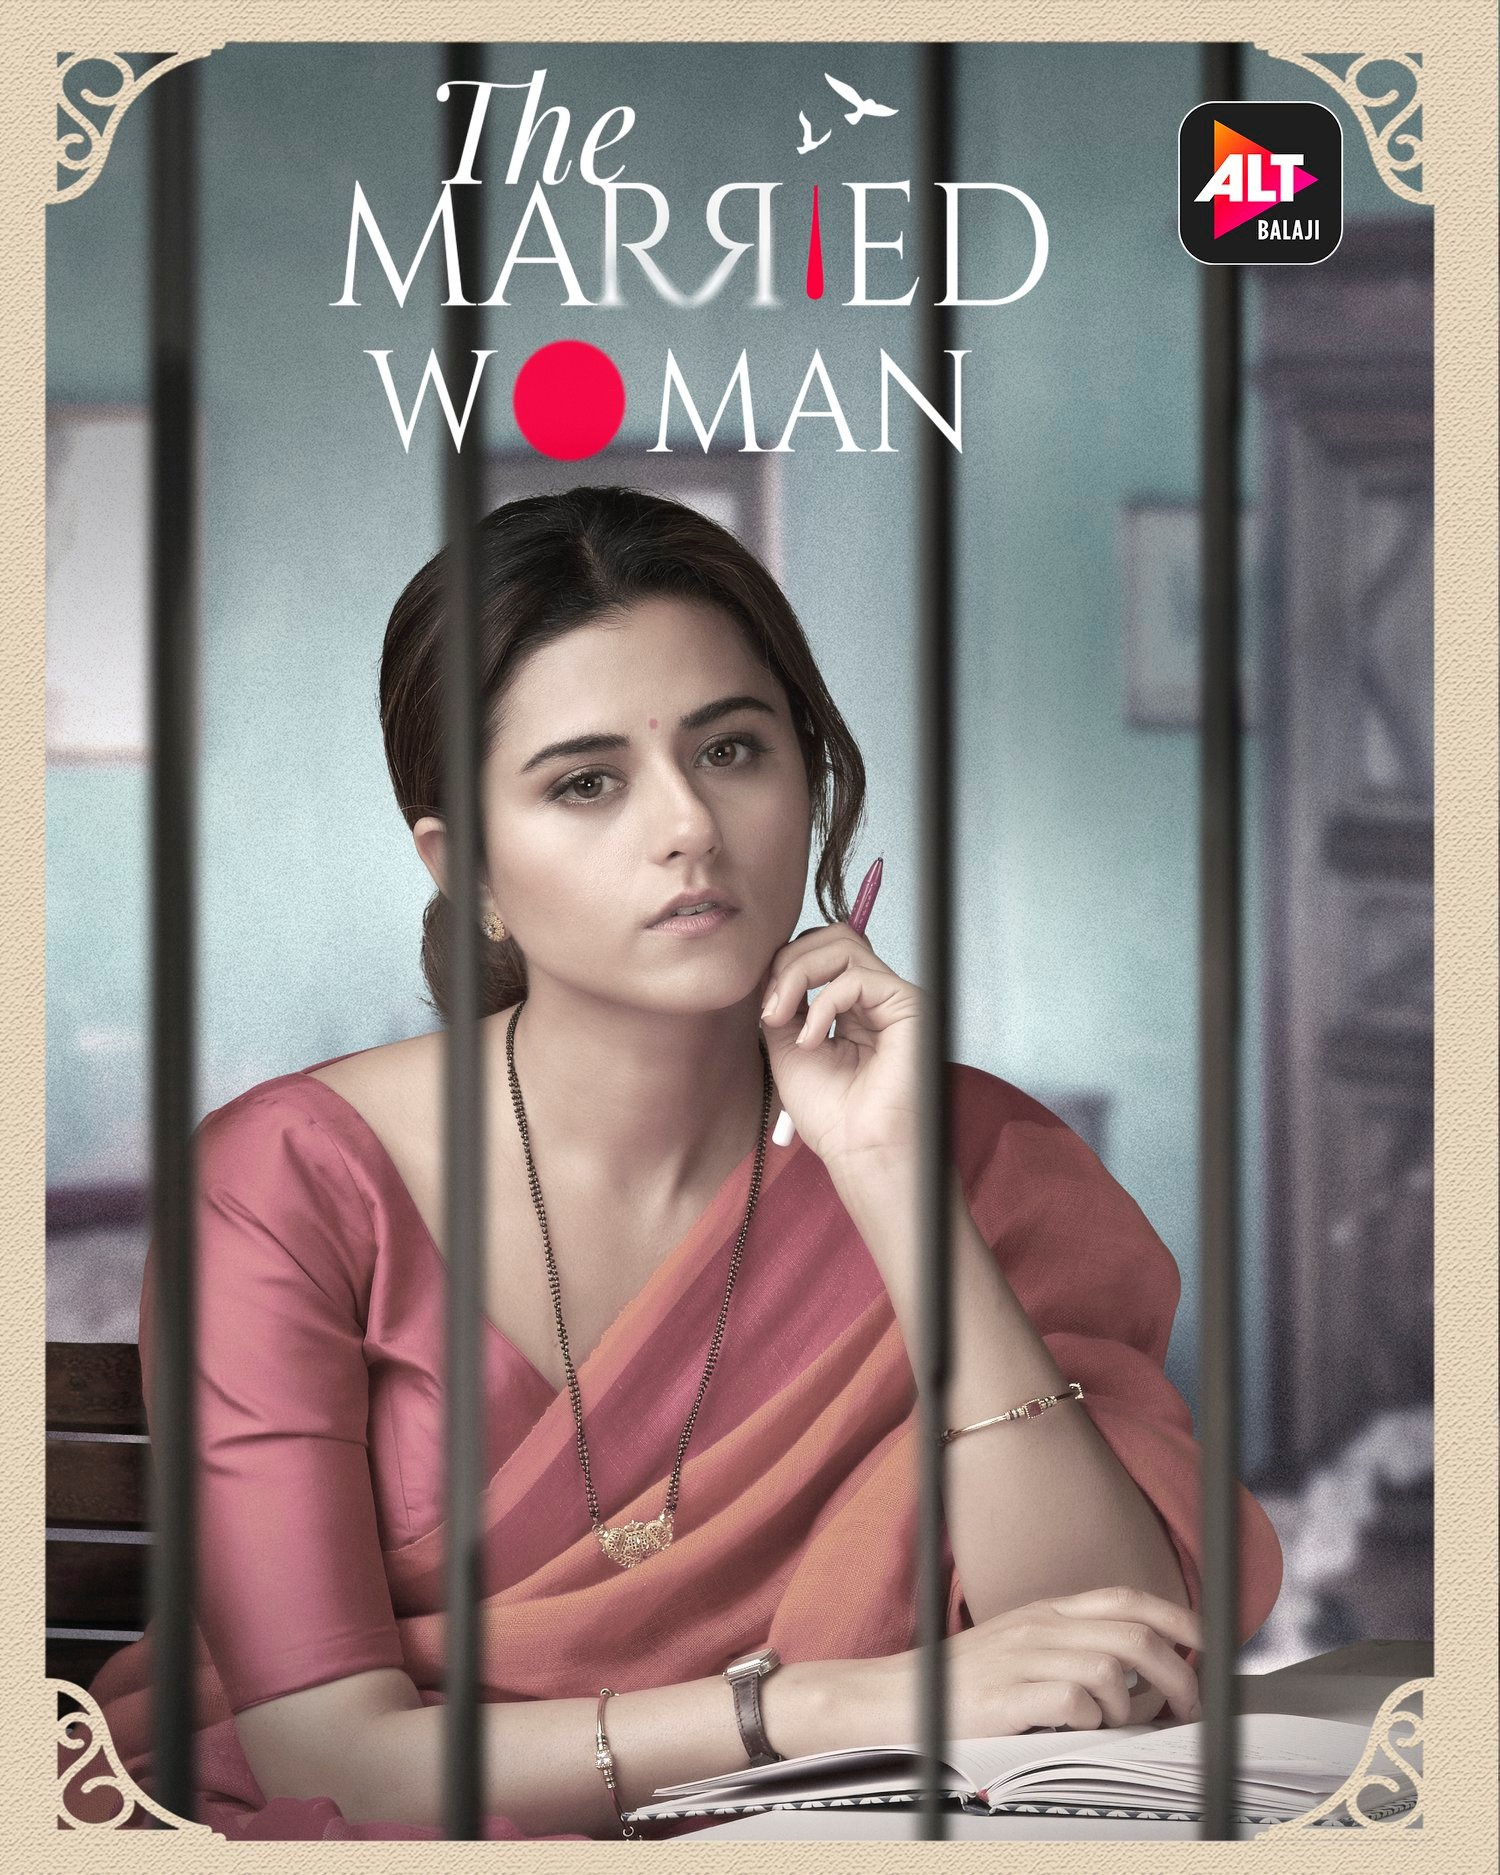 The Married Woman 2021 S01 Hindi Complete ALTBalaji Web Series 1080p HDRip 4500MB Download